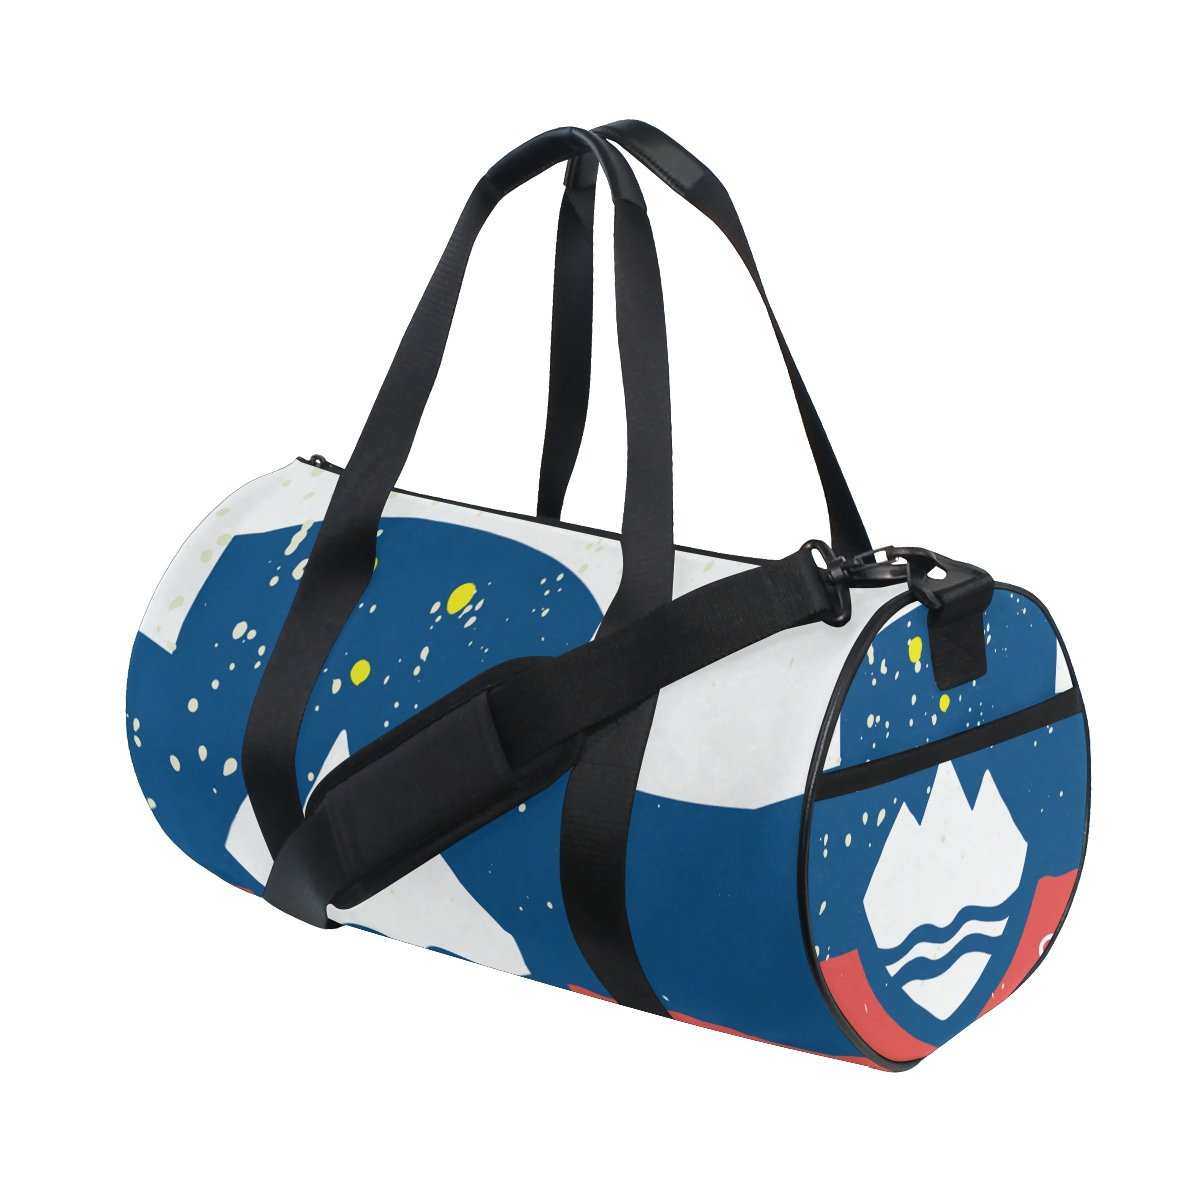 Distressed Slovenia Flag Travel Duffel Shoulder Bag ,Sports Gym Fitness Bags by super3Dprinted